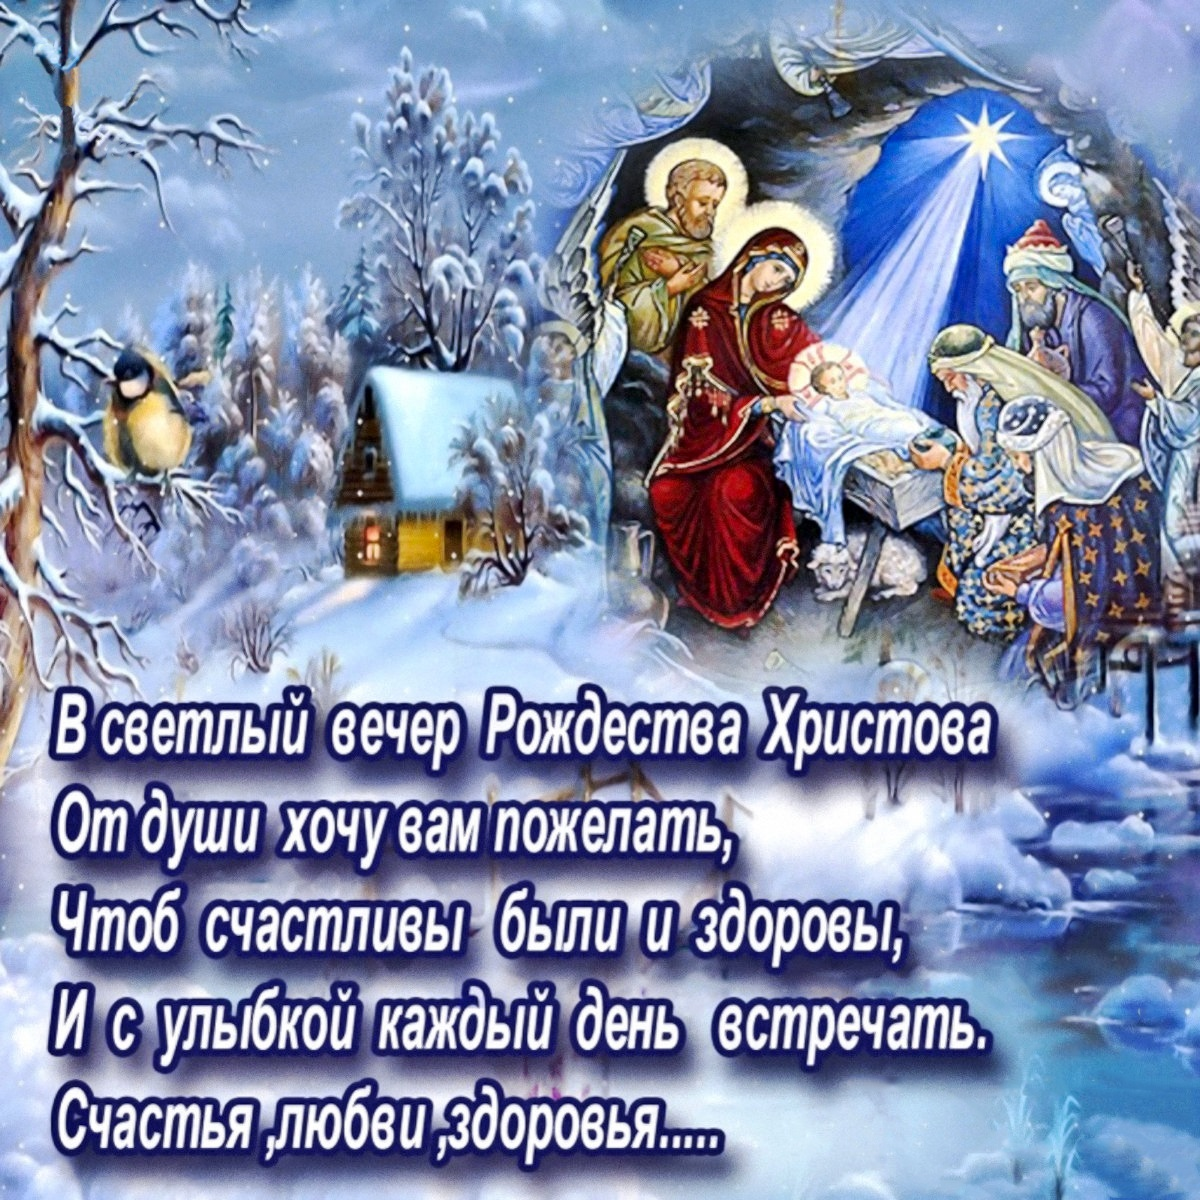 https://02varvara.files.wordpress.com/2017/01/00-christmas-russia-080117.jpg